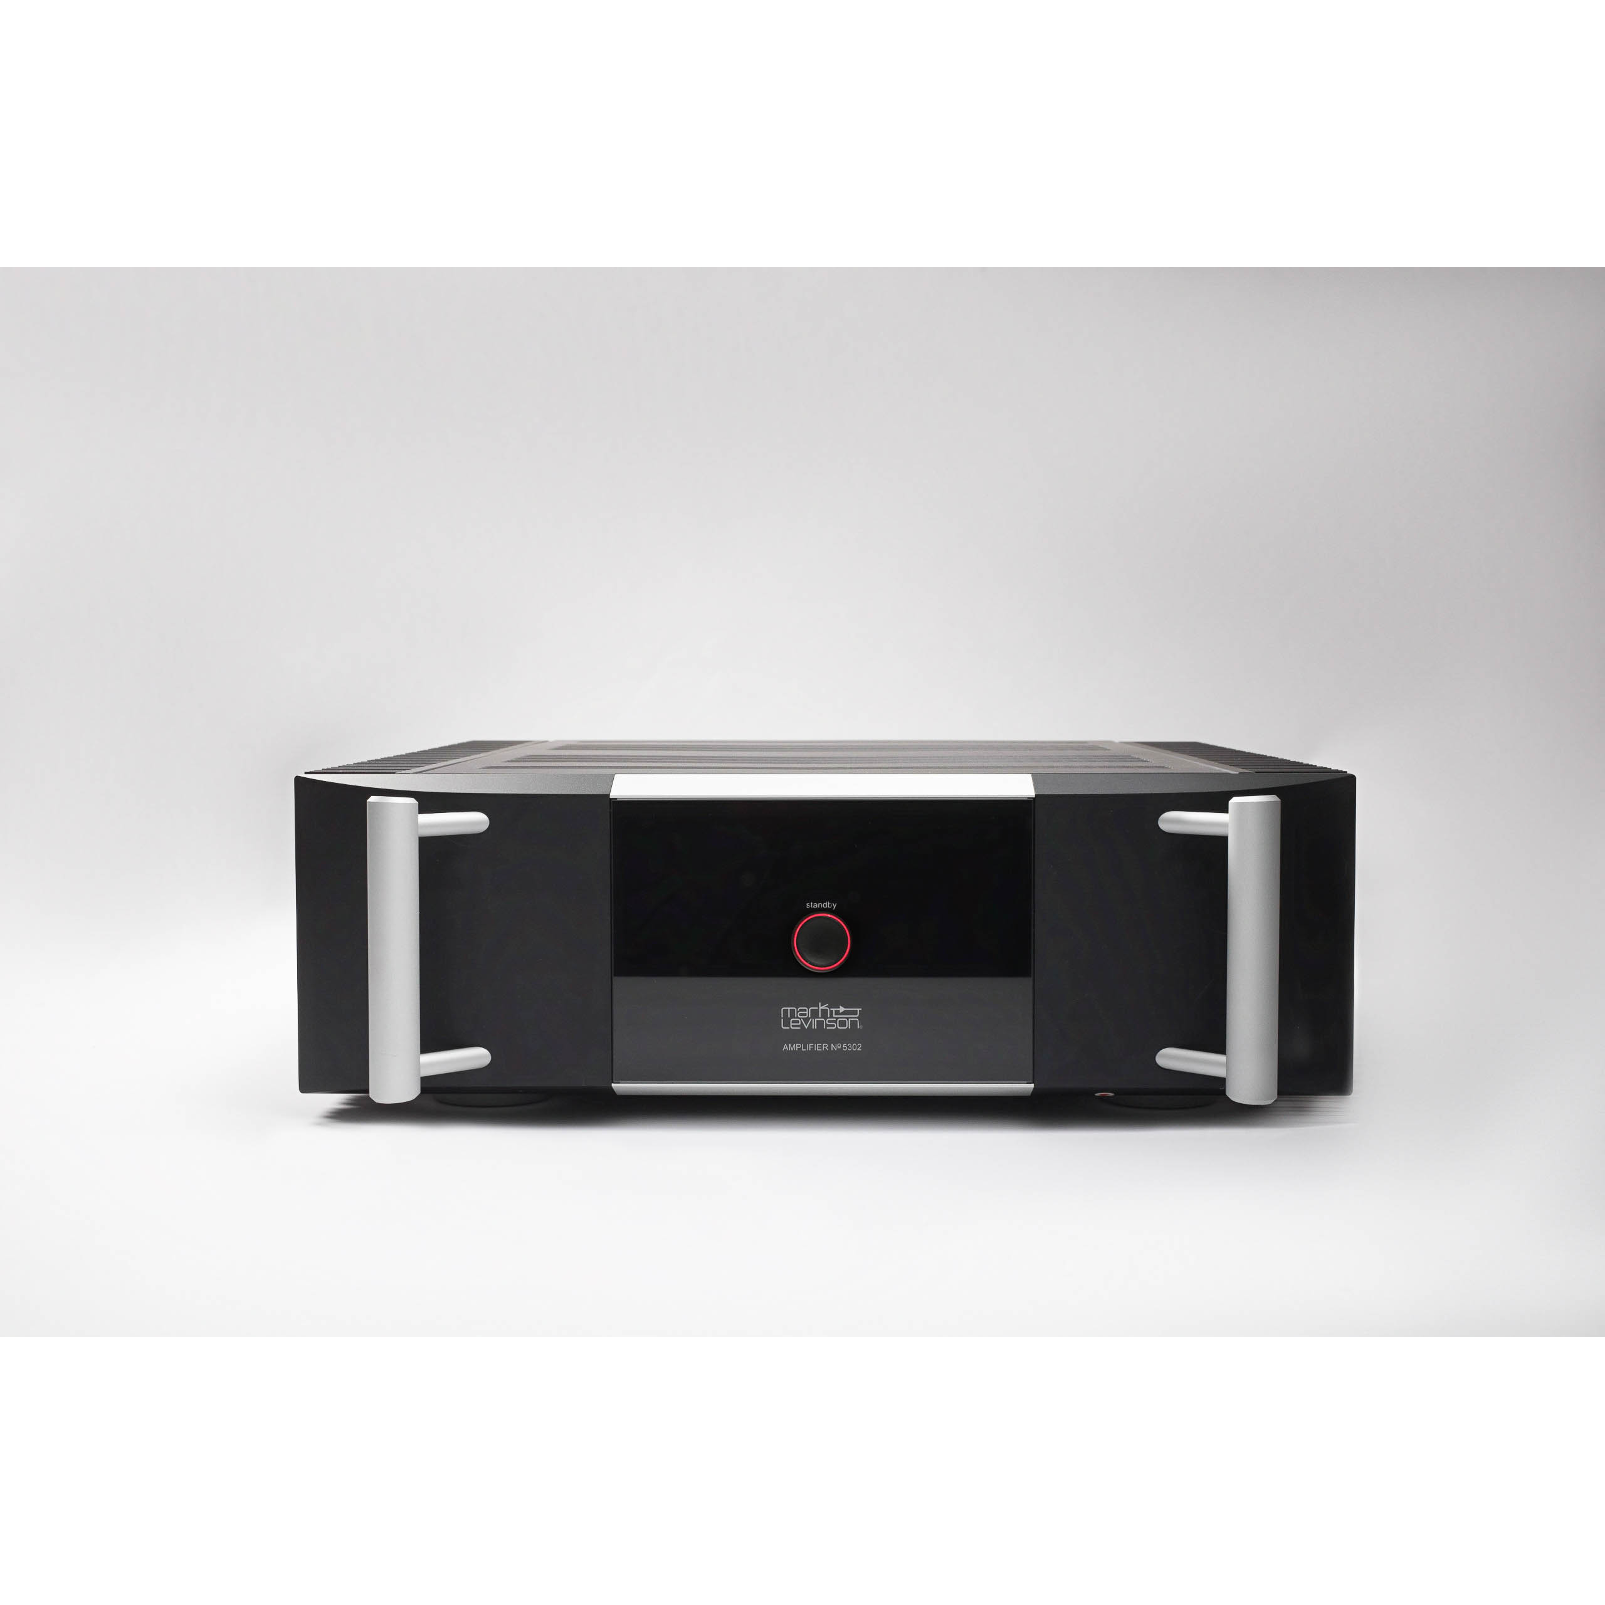 №5302 - Black - Fully-discrete, direct-coupled, dual-monaural, Class AB amplifier - Front